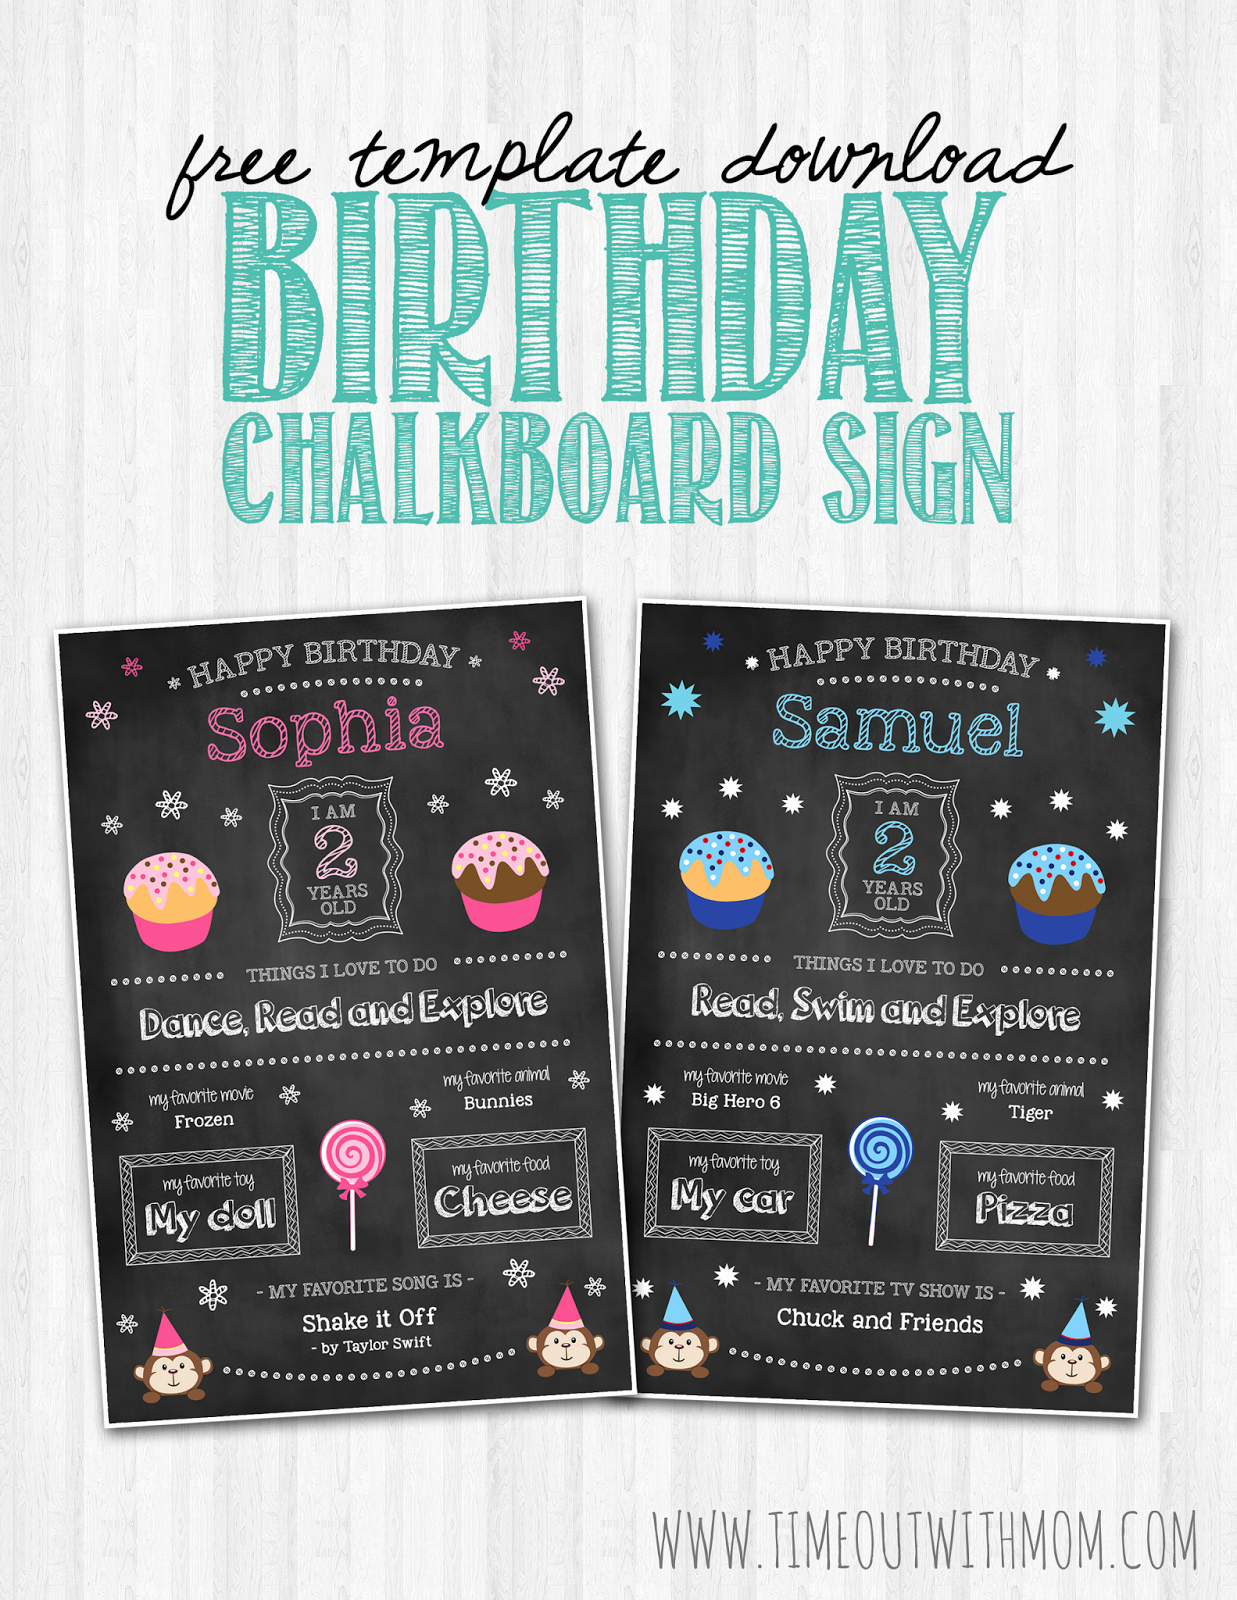 1st Birthday Chalkboard Sign Template Unique Birthday Chalkboard Sign Template and Tutorial